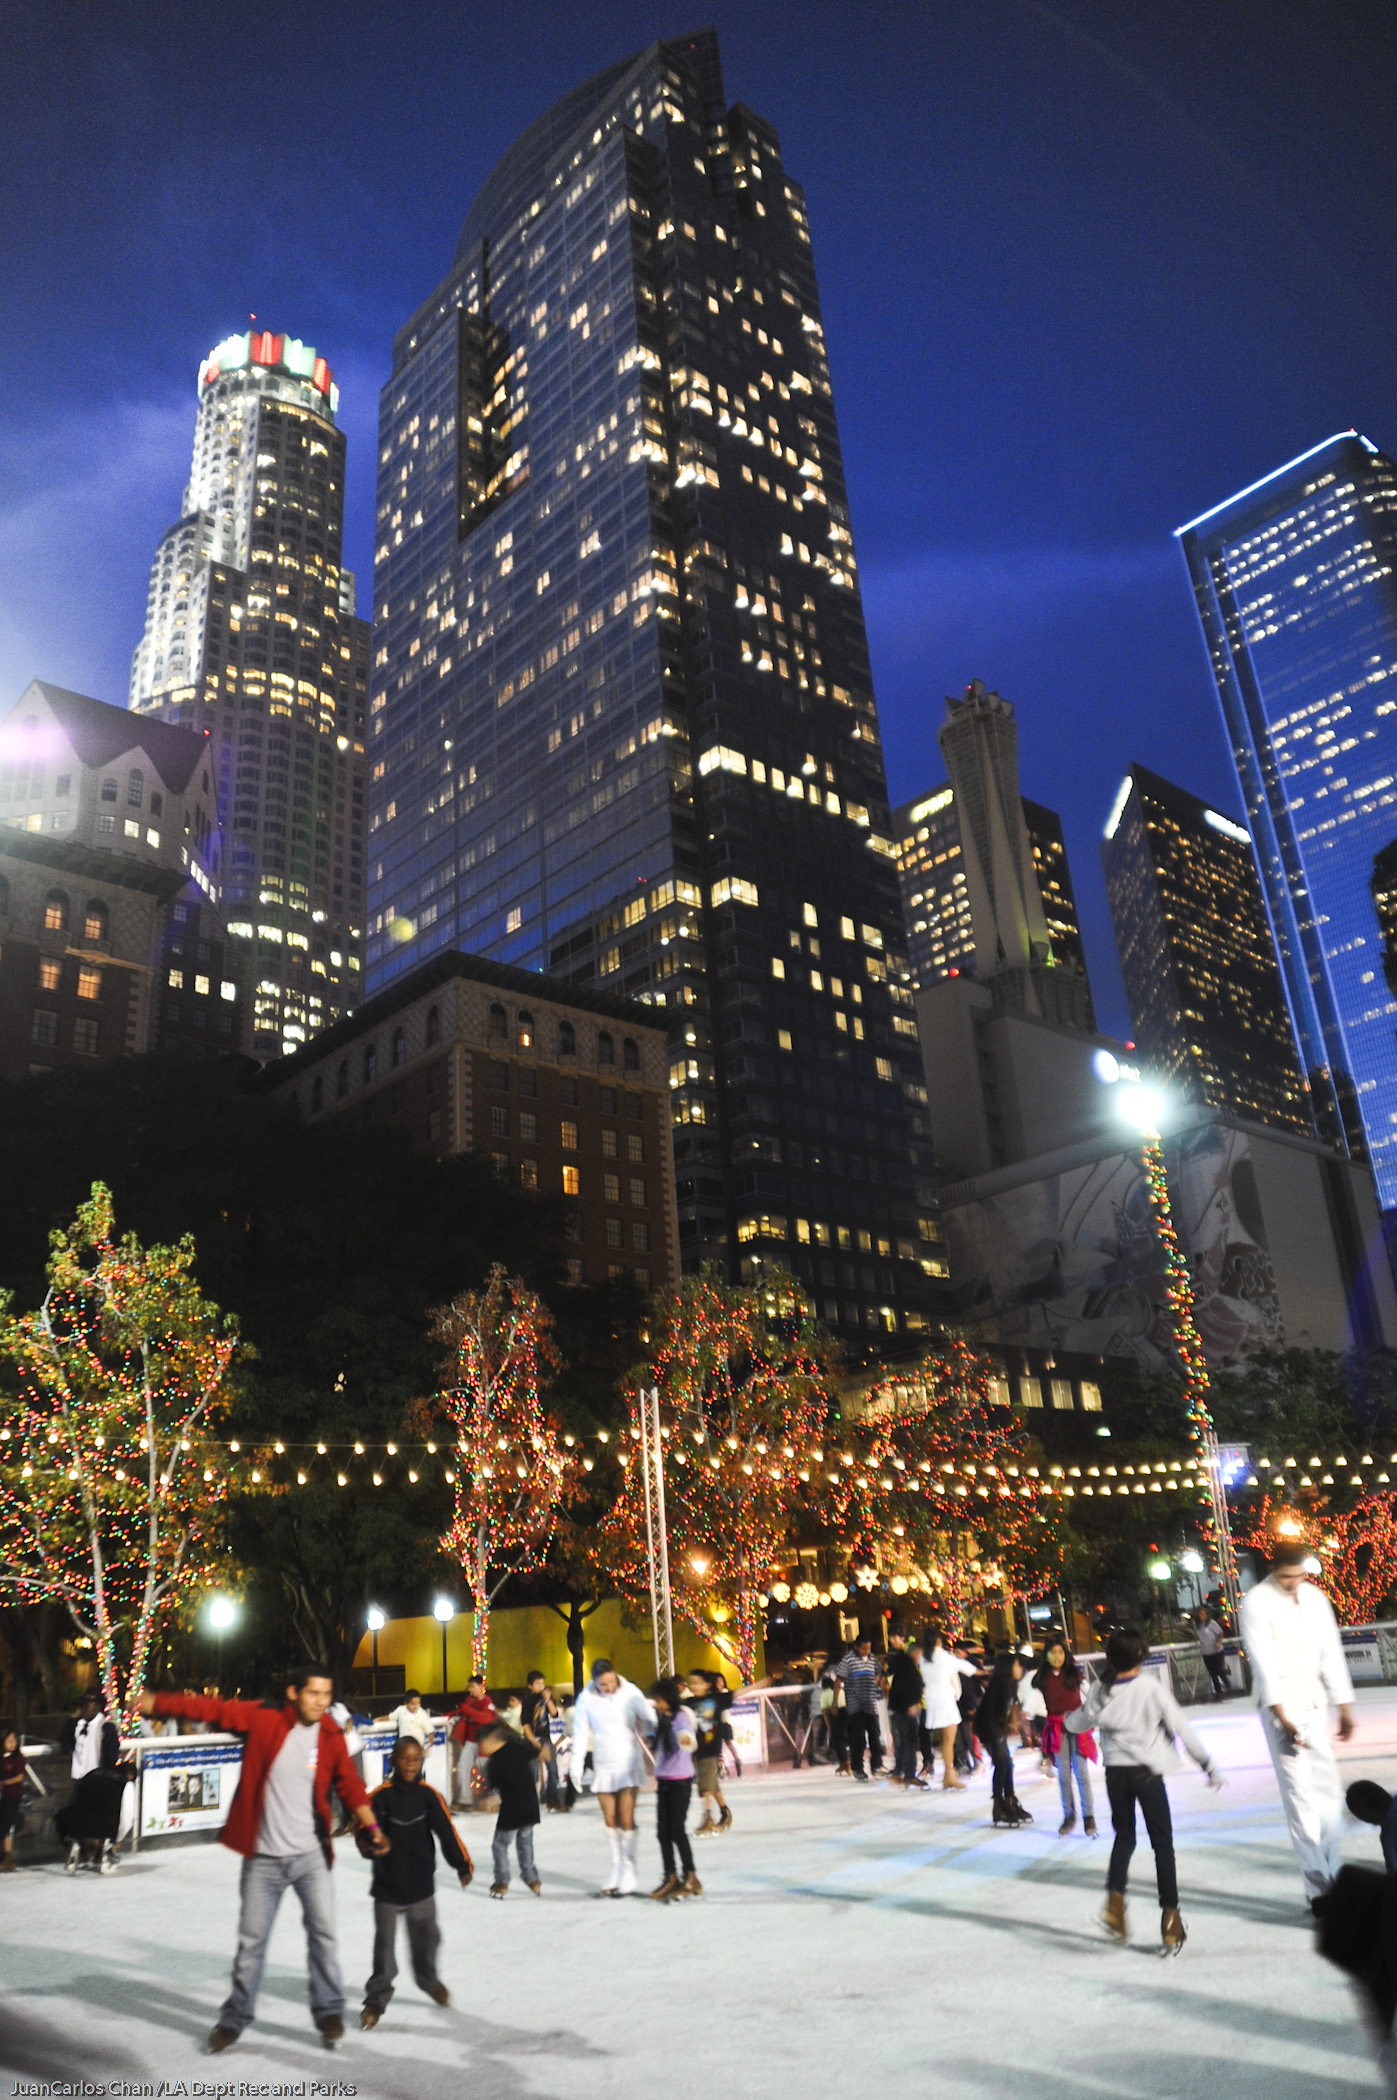 Biggest Backyard Ice Rink : Come get your glide on this holiday season at HOLIDAY ICE RINK